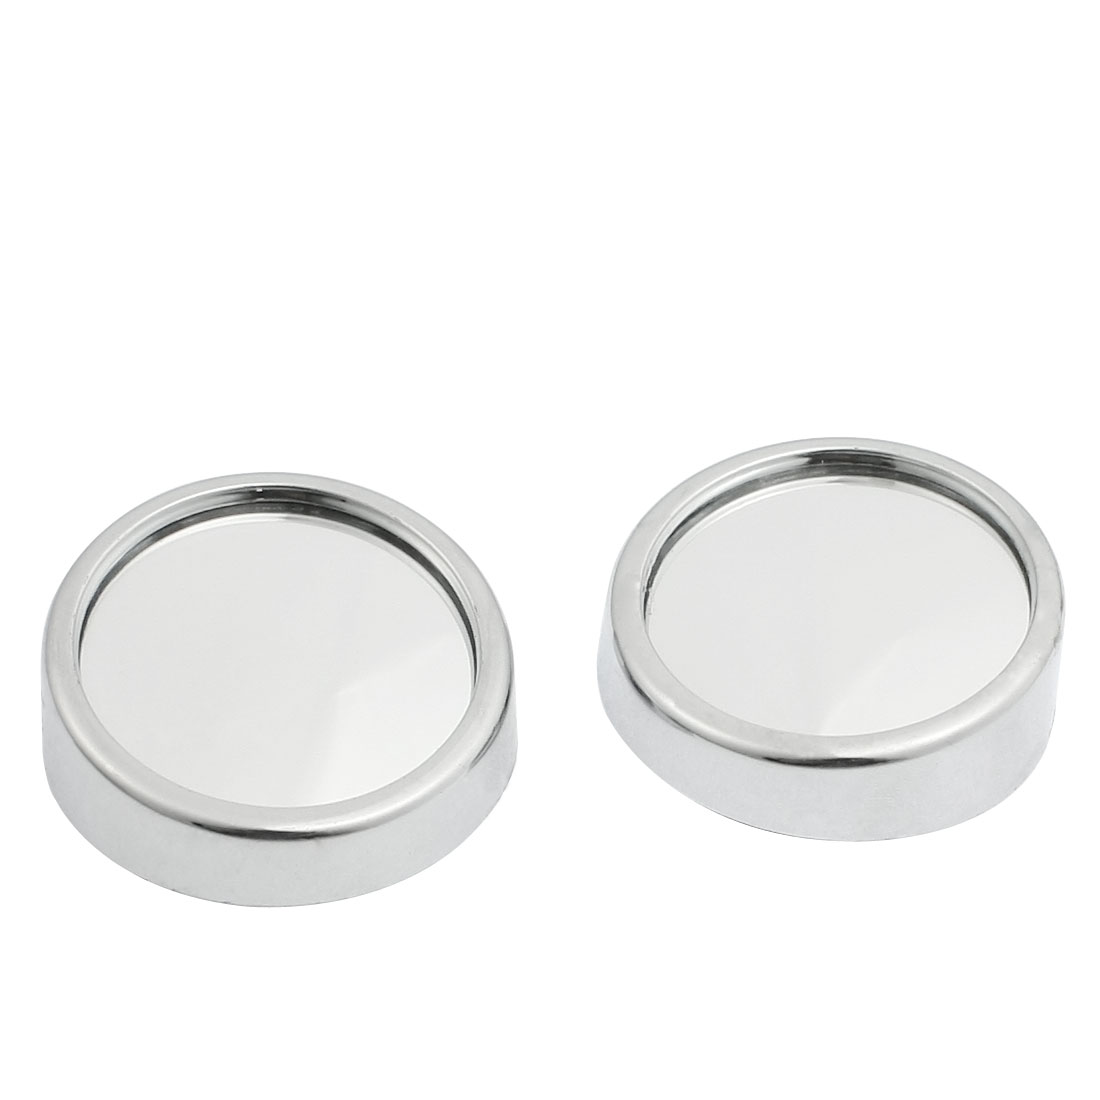 "2 Pcs Adhesive 1.8"" Round Car Side Rearview Blind Spot Mirrors Silver Tone"